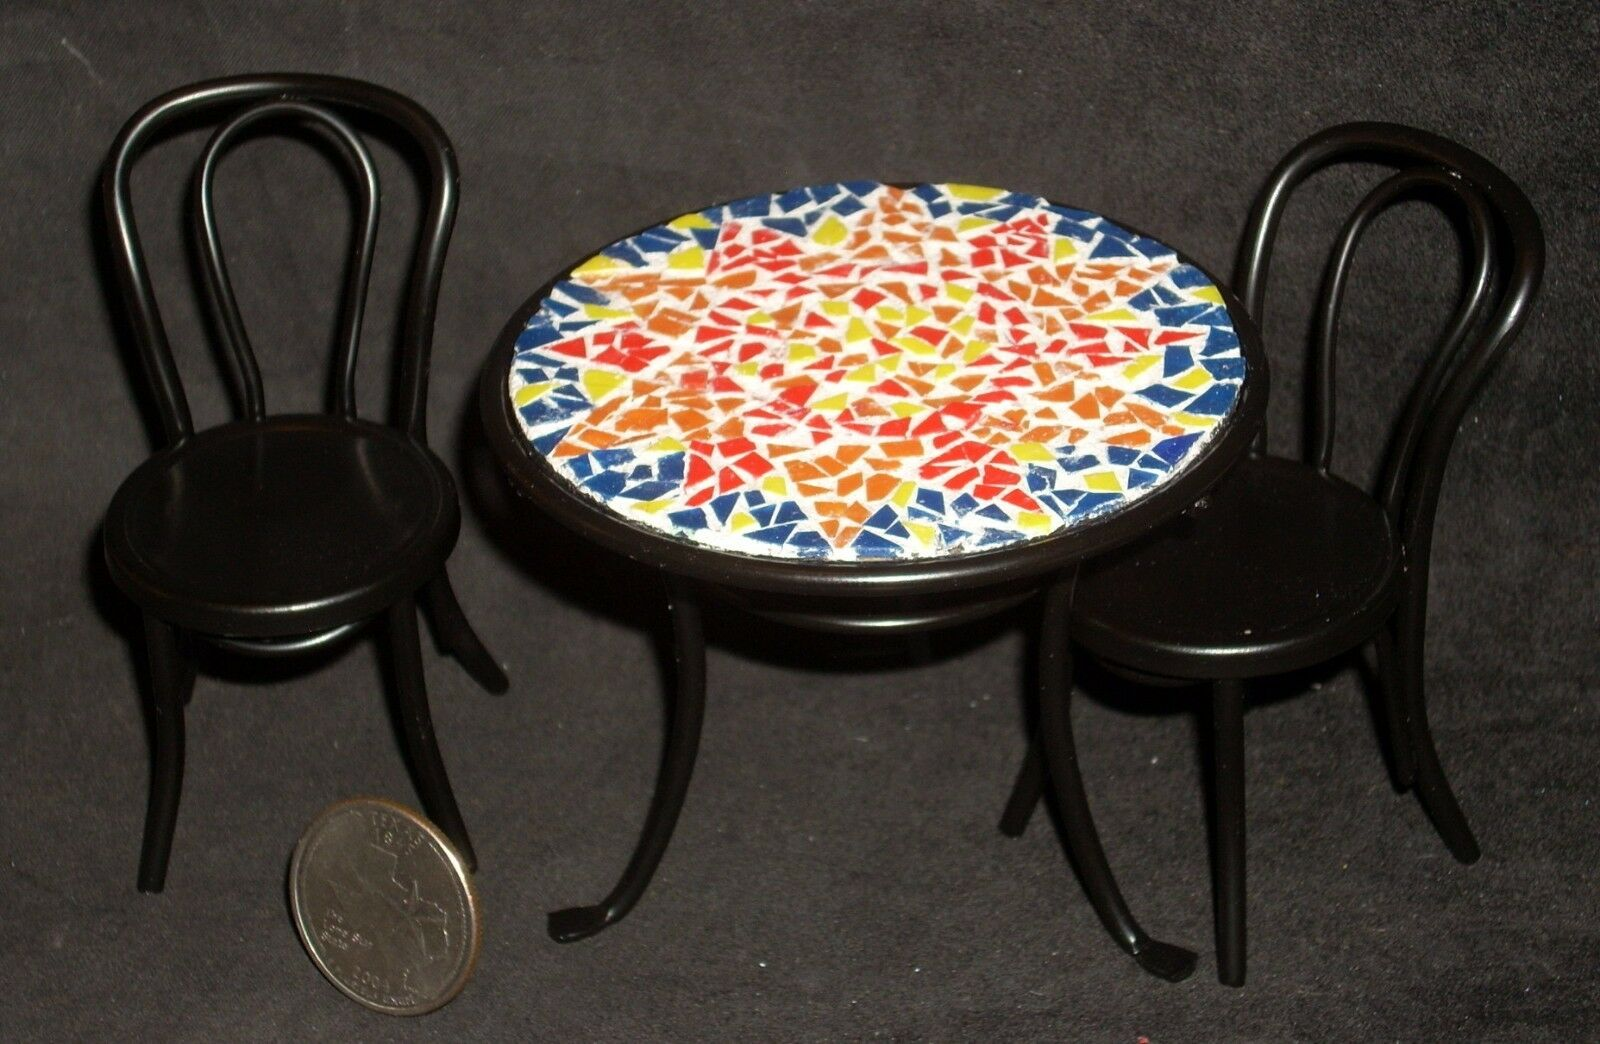 Mosaic Topped Table 2 Chairs 1:12 Cafe Garden Patio Bistro Miniature S50 2952